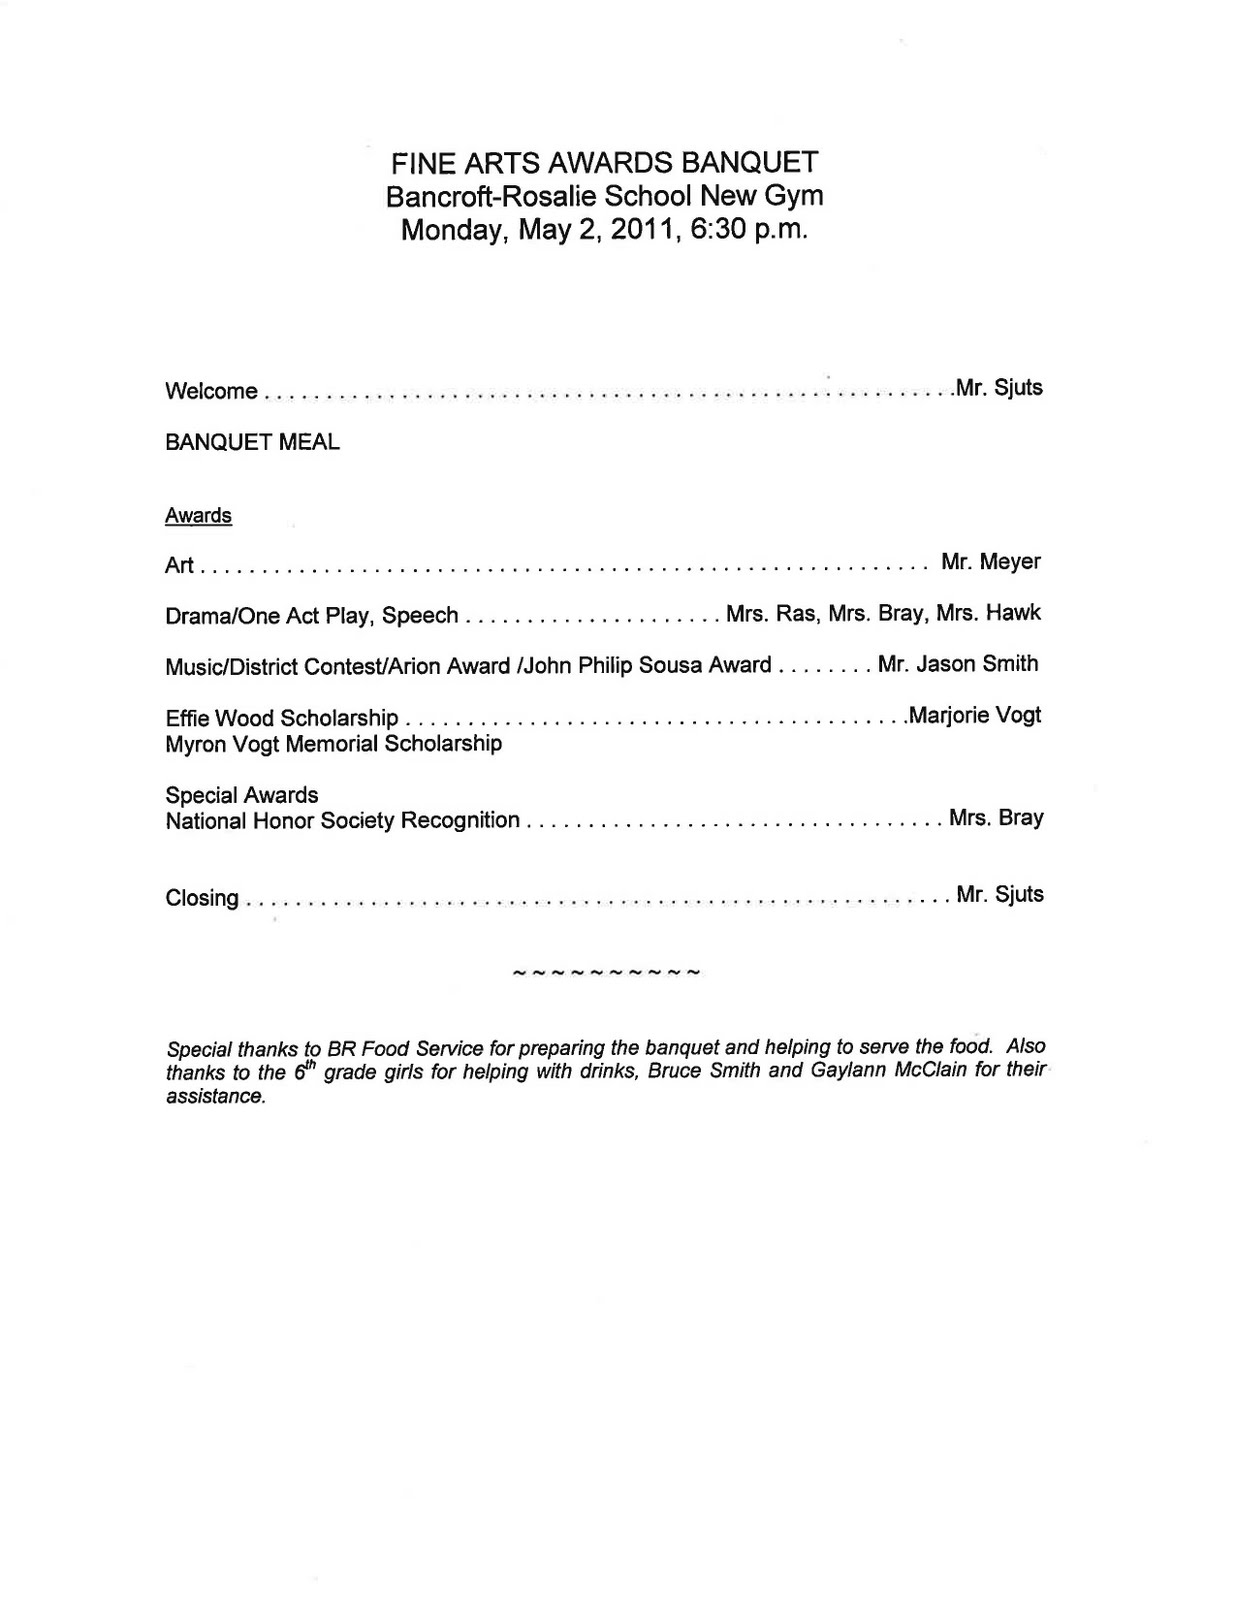 Dr Cernys BR Hype May 2011 – Banquet Agenda Template